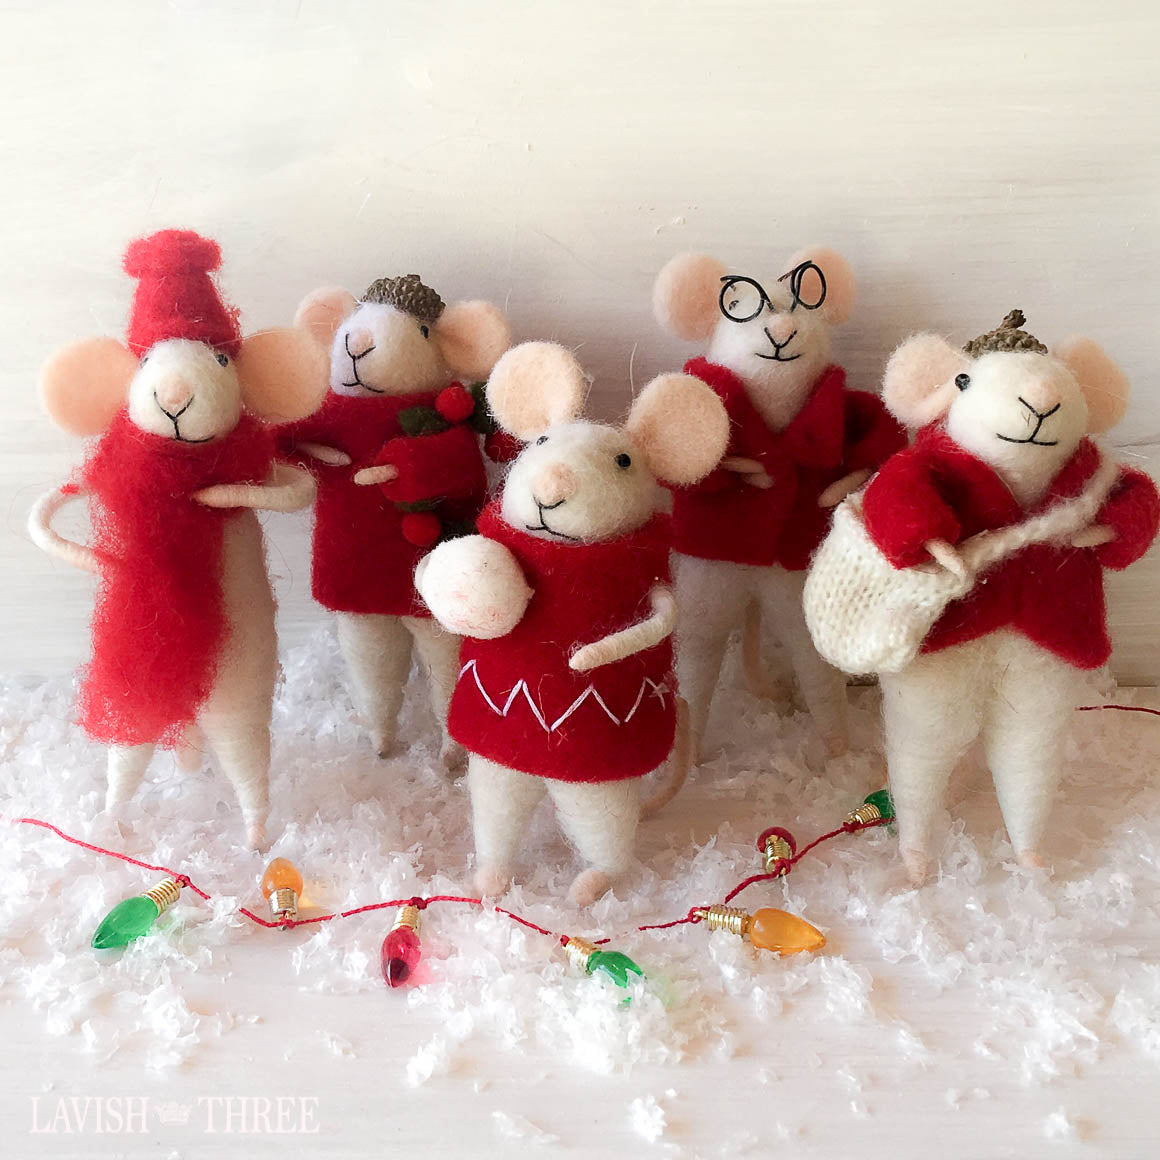 When Is Little Christmas.Merry Little Christmas Mice Collection